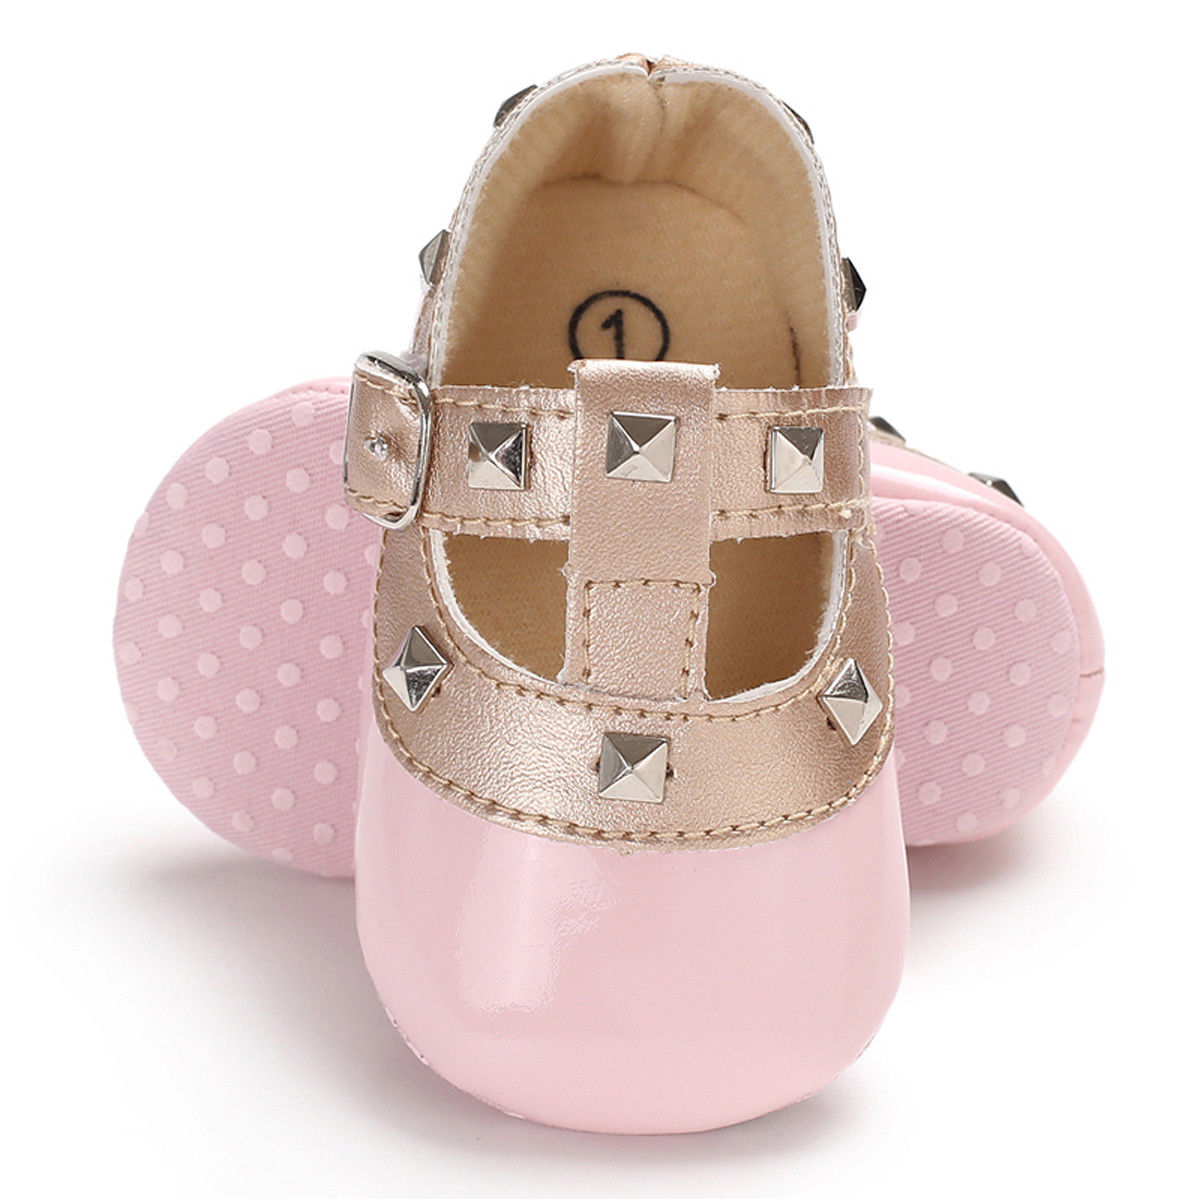 New Newborn Baby Girls Bow Princess Shoes Soft Sole Crib Leather Solid Buckle Strap Flat With Heel Baby Shoes 4 Colors in Leather Shoes from Mother Kids